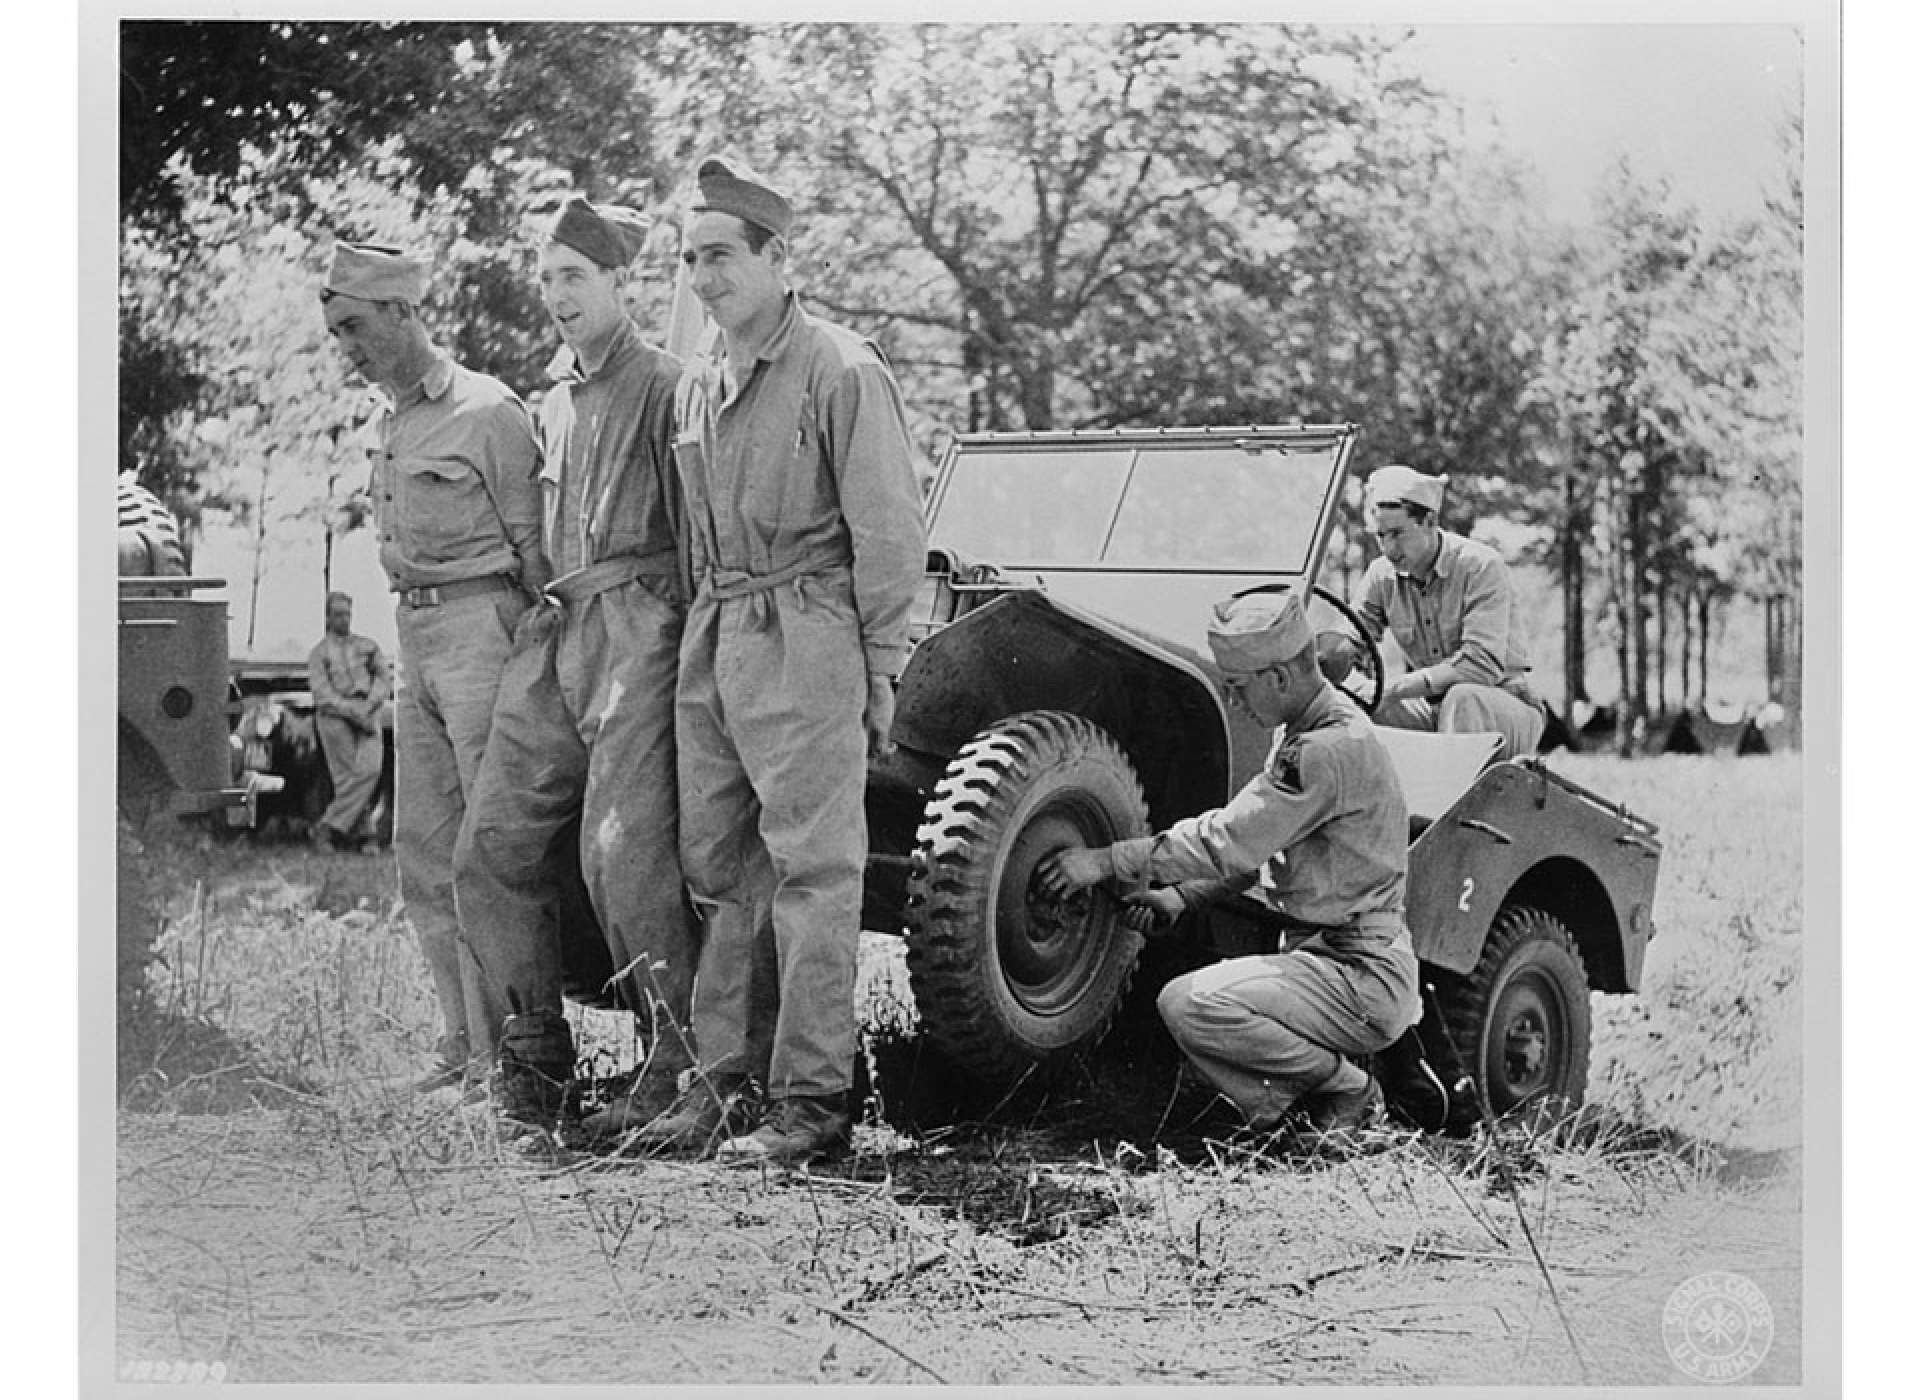 Soldiers of headquarters company of the Armored Corps lifting a jeep to repair it at their bivouac area during Second Army maneuvers, June 1941. Library of Congress